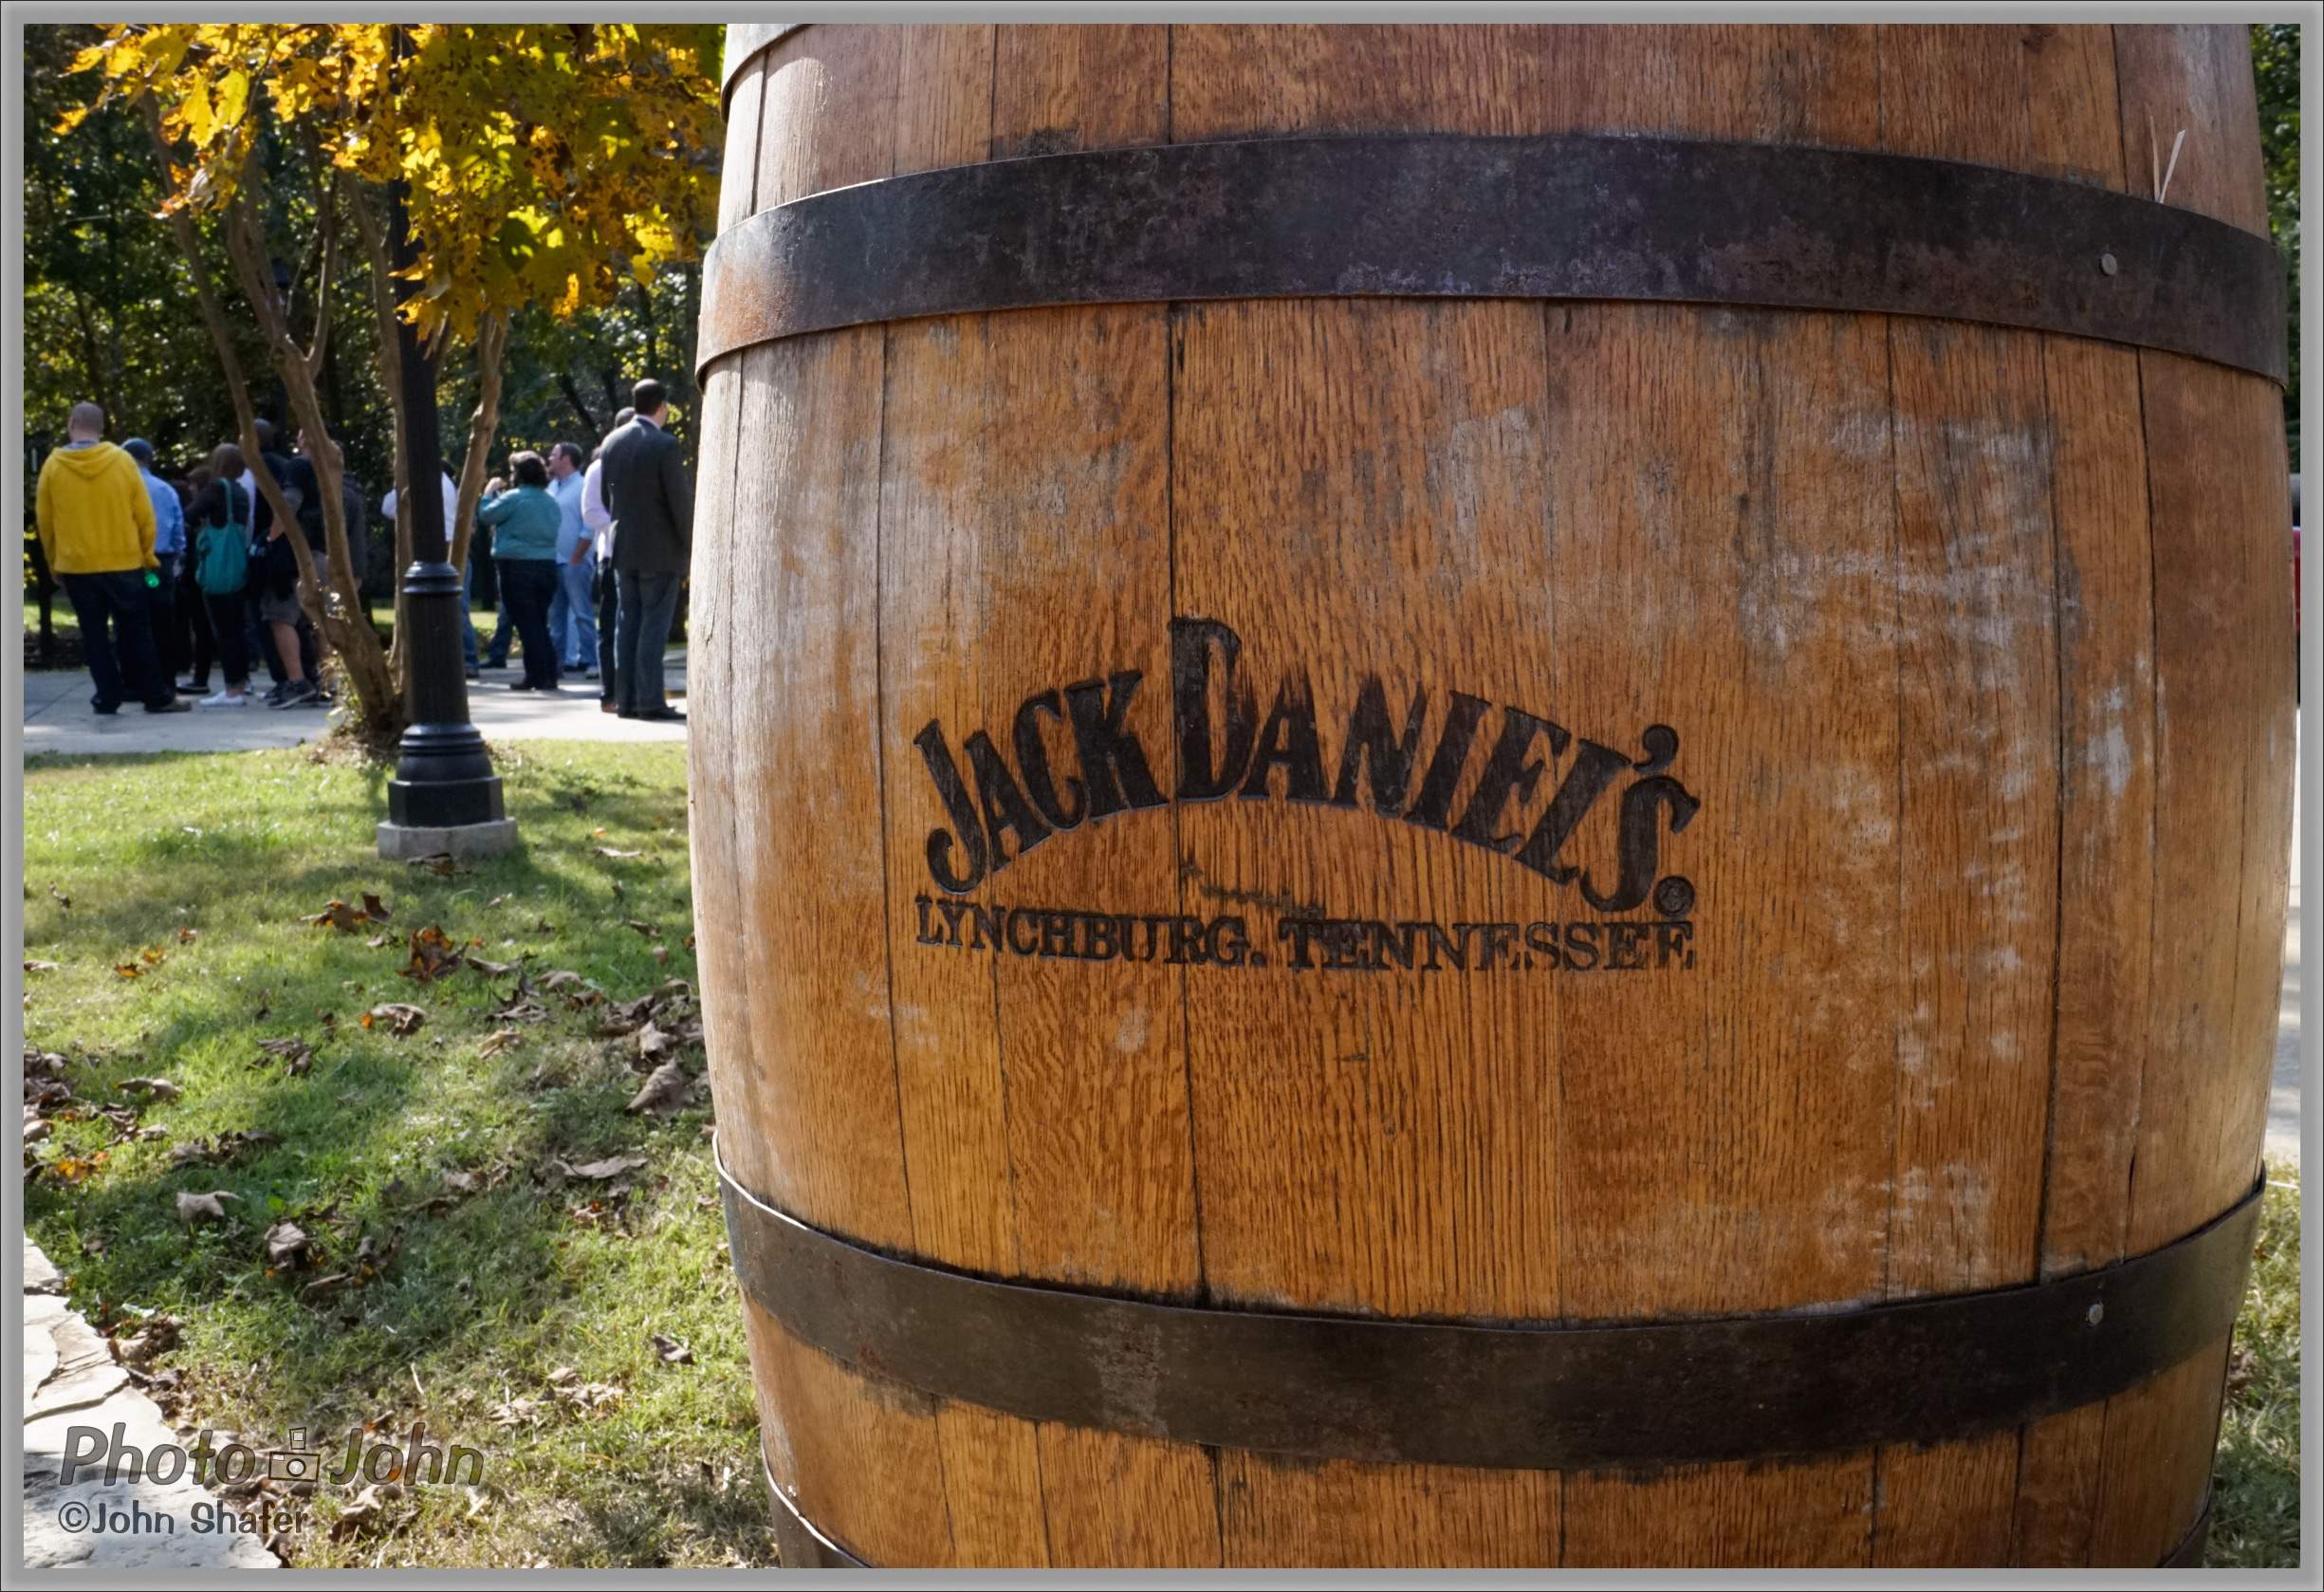 Sony Alpha A7 - Barrel - Jack Daniels Distillery